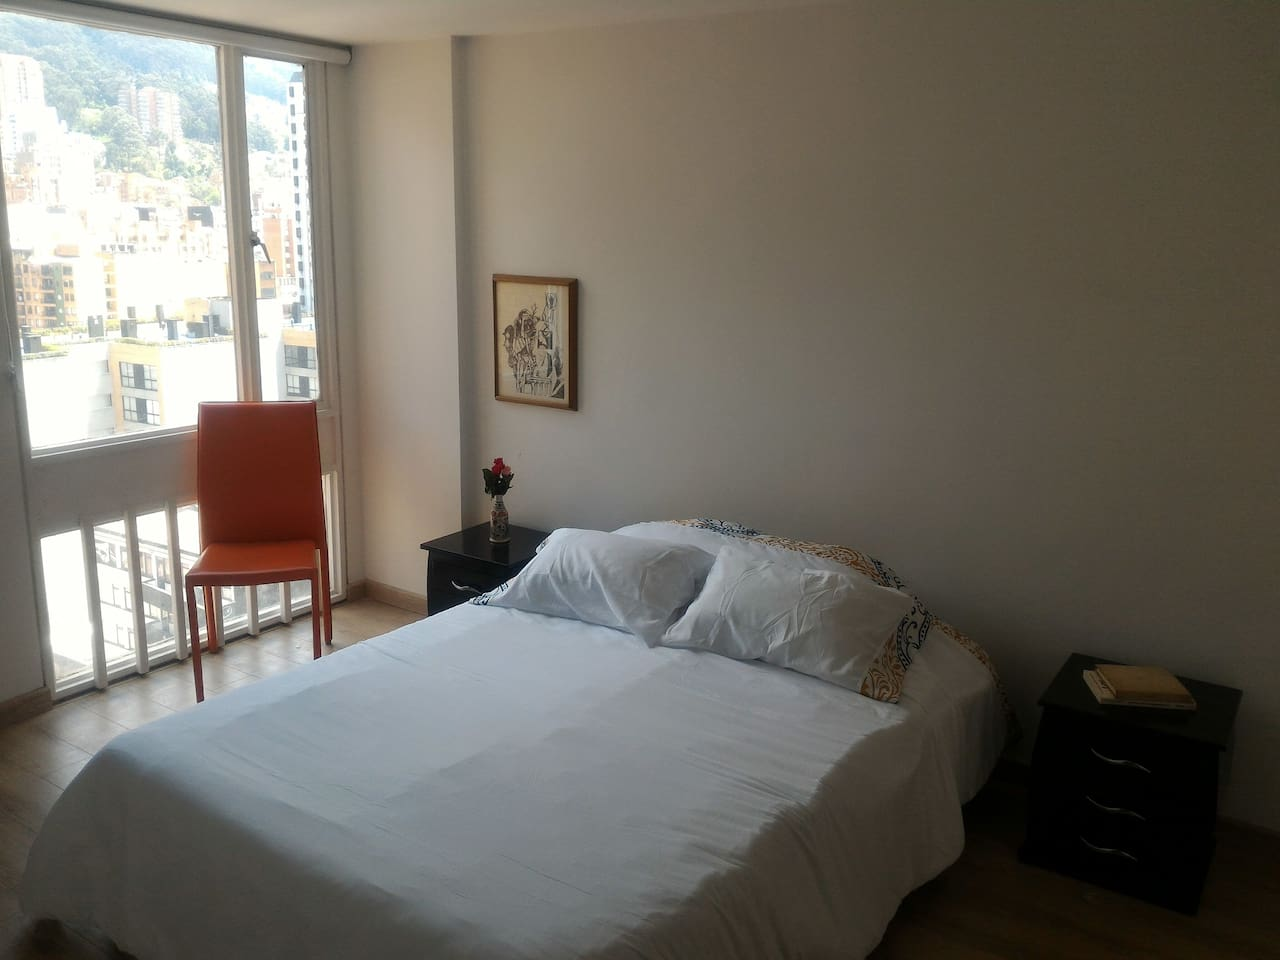 Cuarto con cama doble/ Room with bed for two